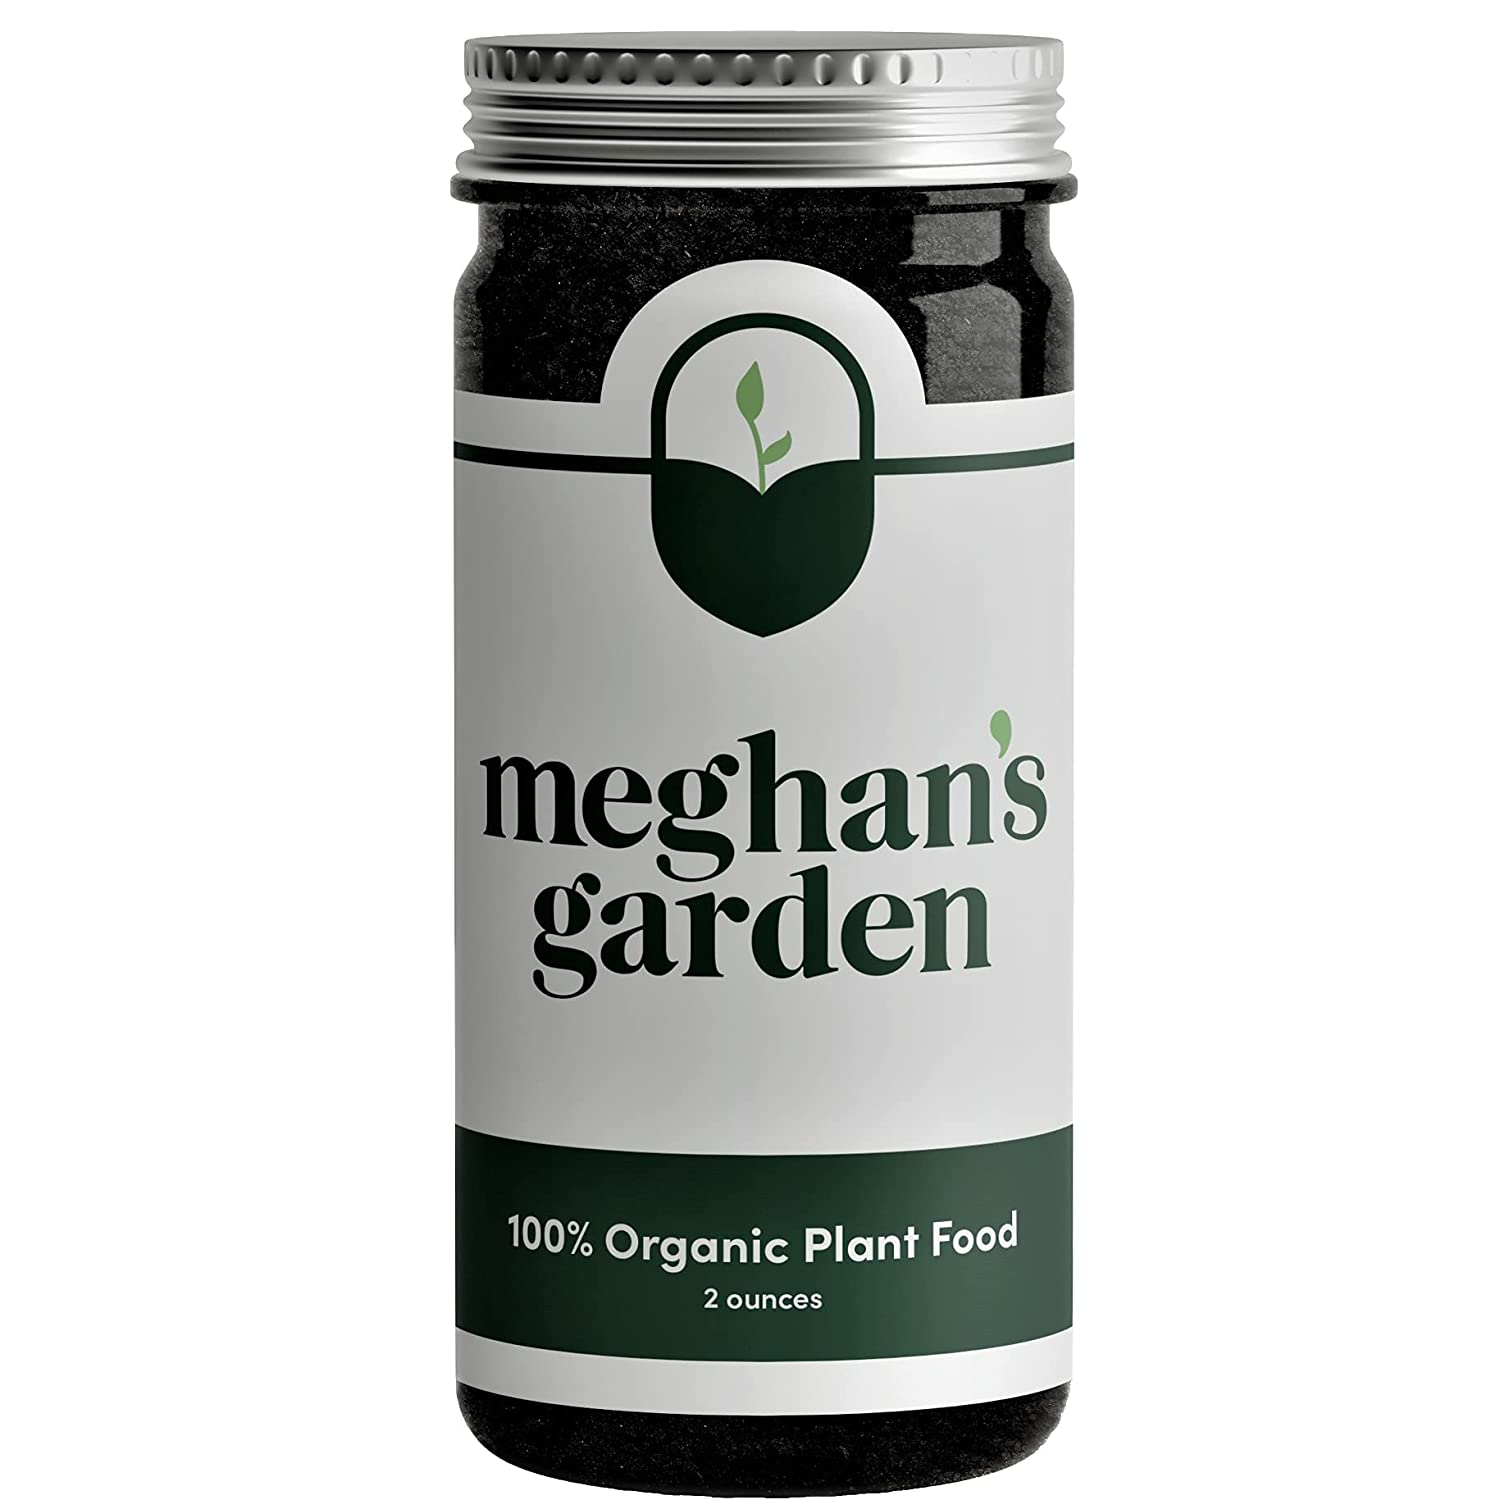 Meghan's Garden All-Purpose Plant Food | Indoor & Outdoor Use | Potted Plants | Water-Soluble Fertilizer | 100% Organic | Easy Shake | 2 oz. | Made in USA | Succulents, Herbs, Fruits & Vegetables